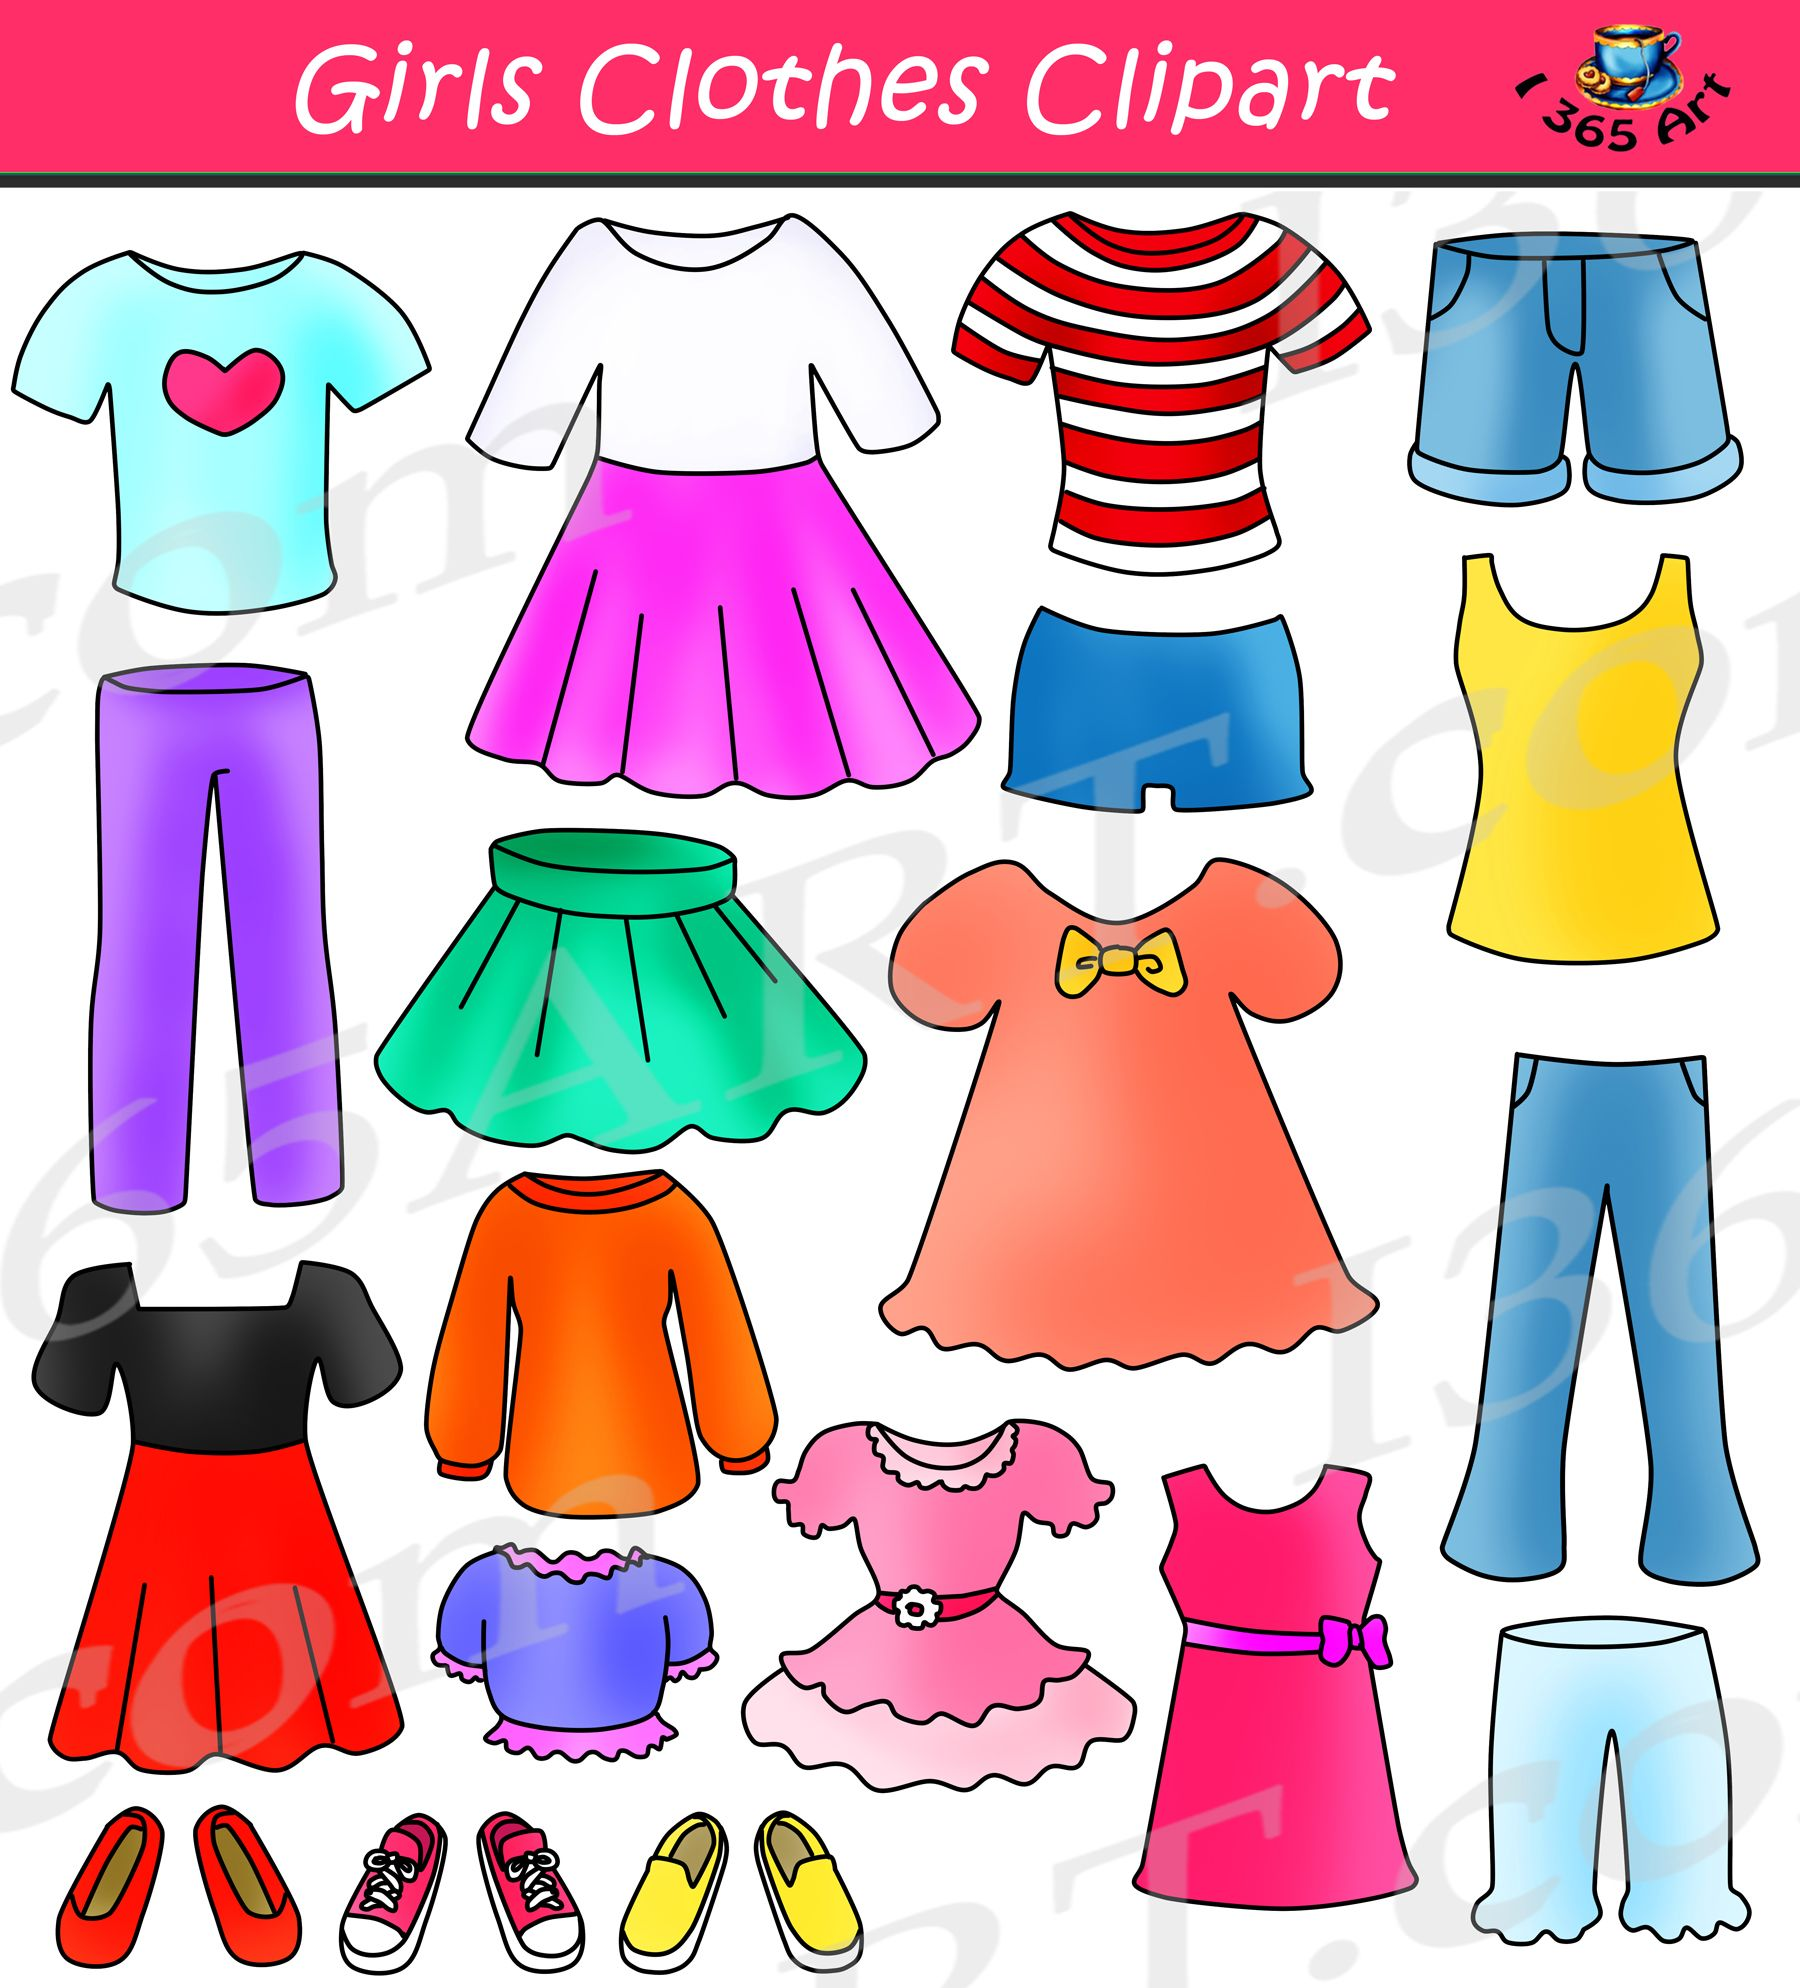 girls clothes clipart set dress up clip art school clipart cute rh pinterest co uk clothing clip art for teachers clothing clip art kids